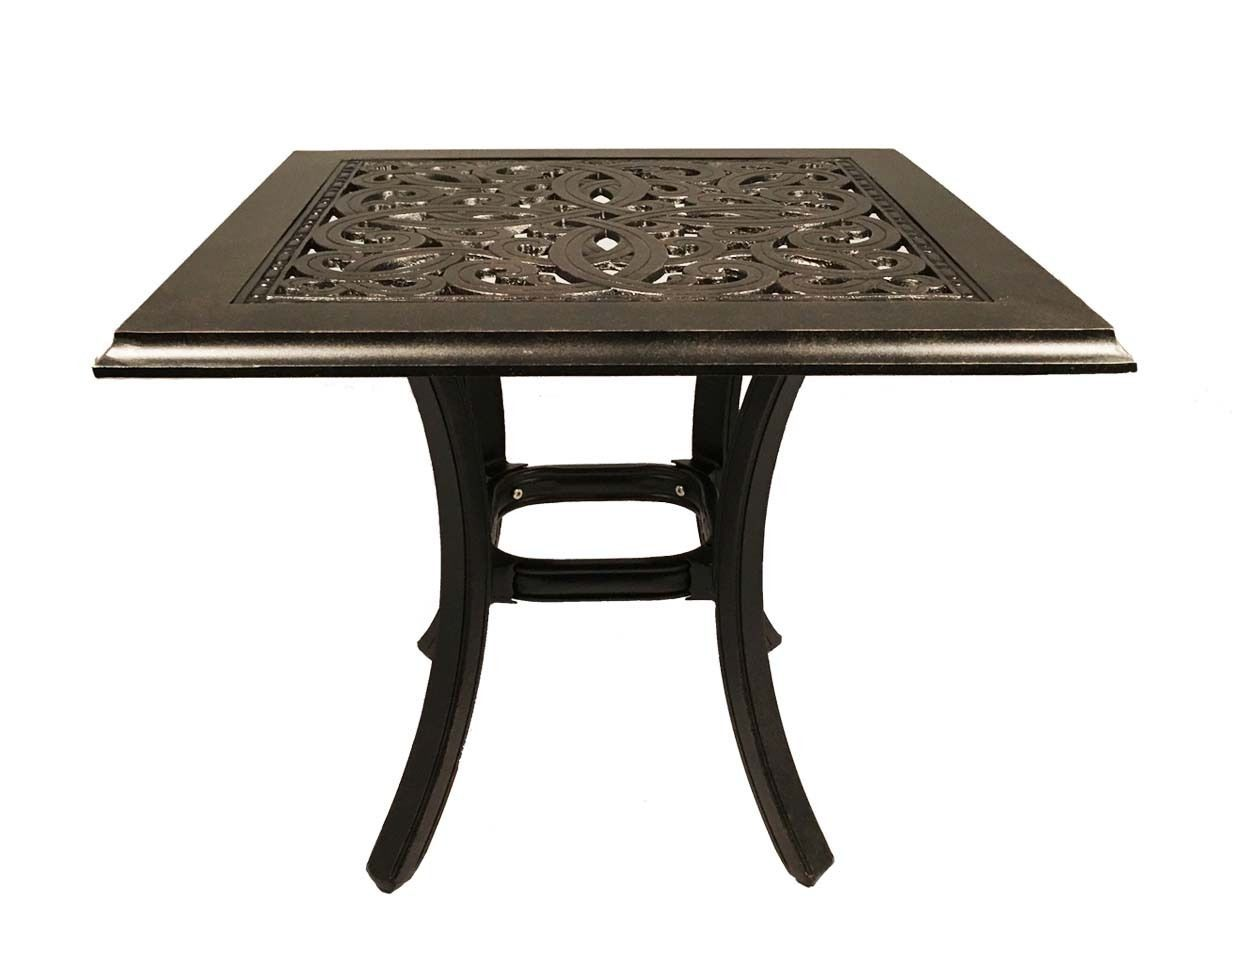 "Patio end table square 24"" Outdoor Cast aluminum Accent Pool side Furniture"